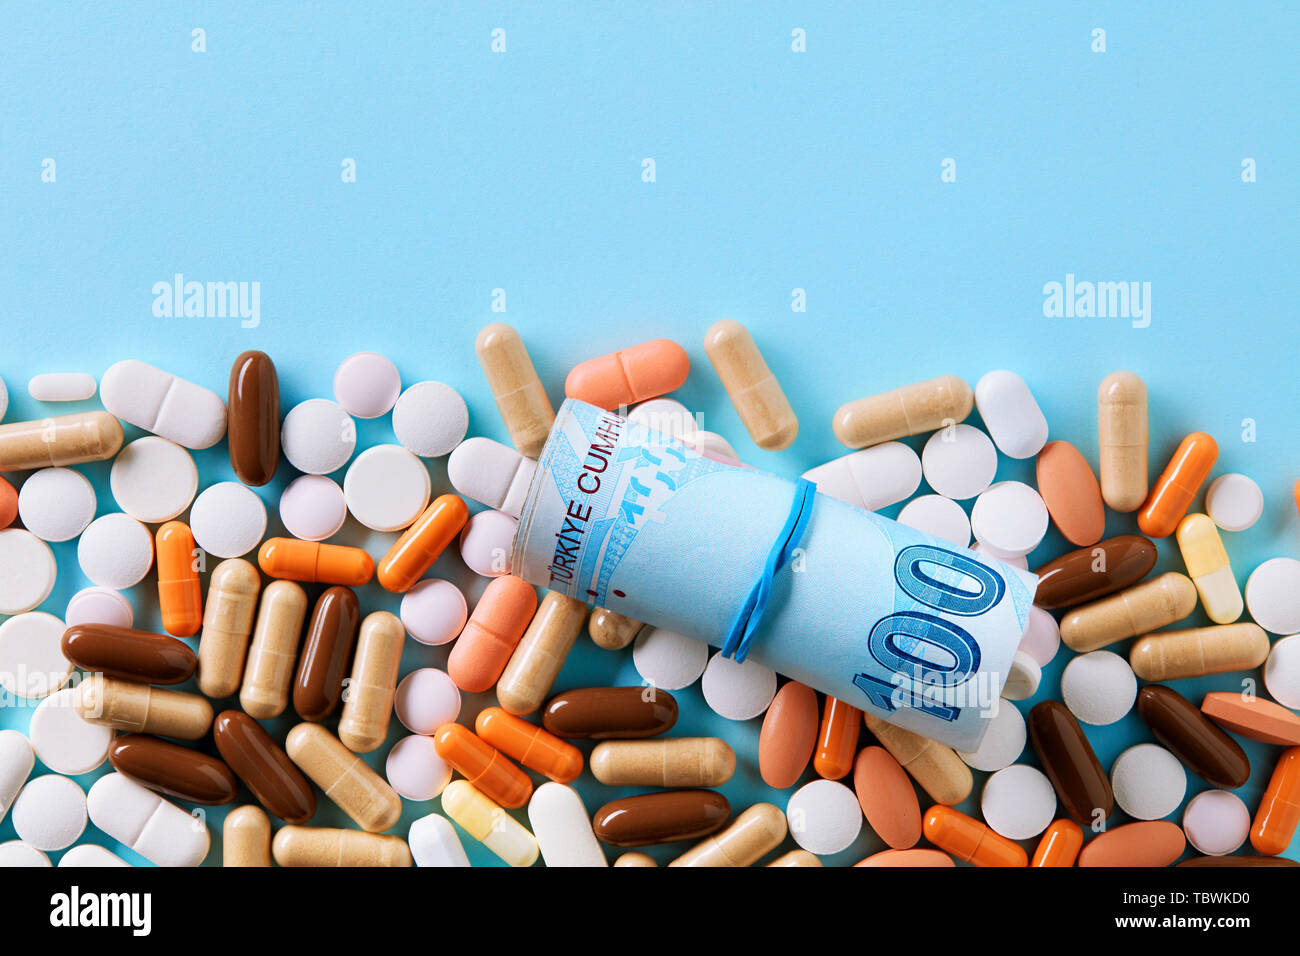 Hundred Turkish Lira bills over the medical pills. Expensive medicine and healthcare industry concept. Overhead macro view with copy space. Stock Photo